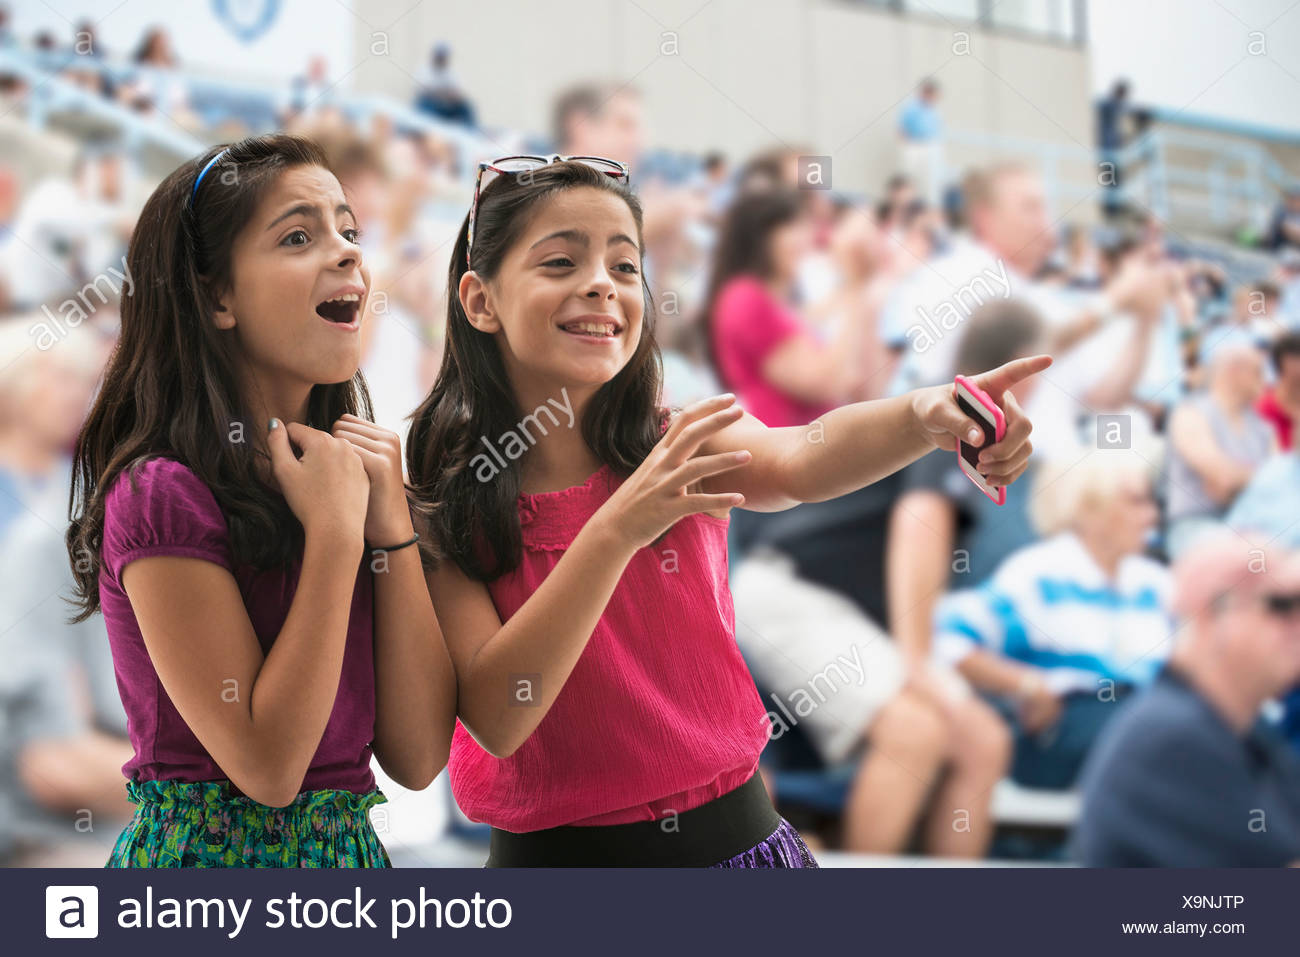 Adoring girls at pop concert - Stock Image